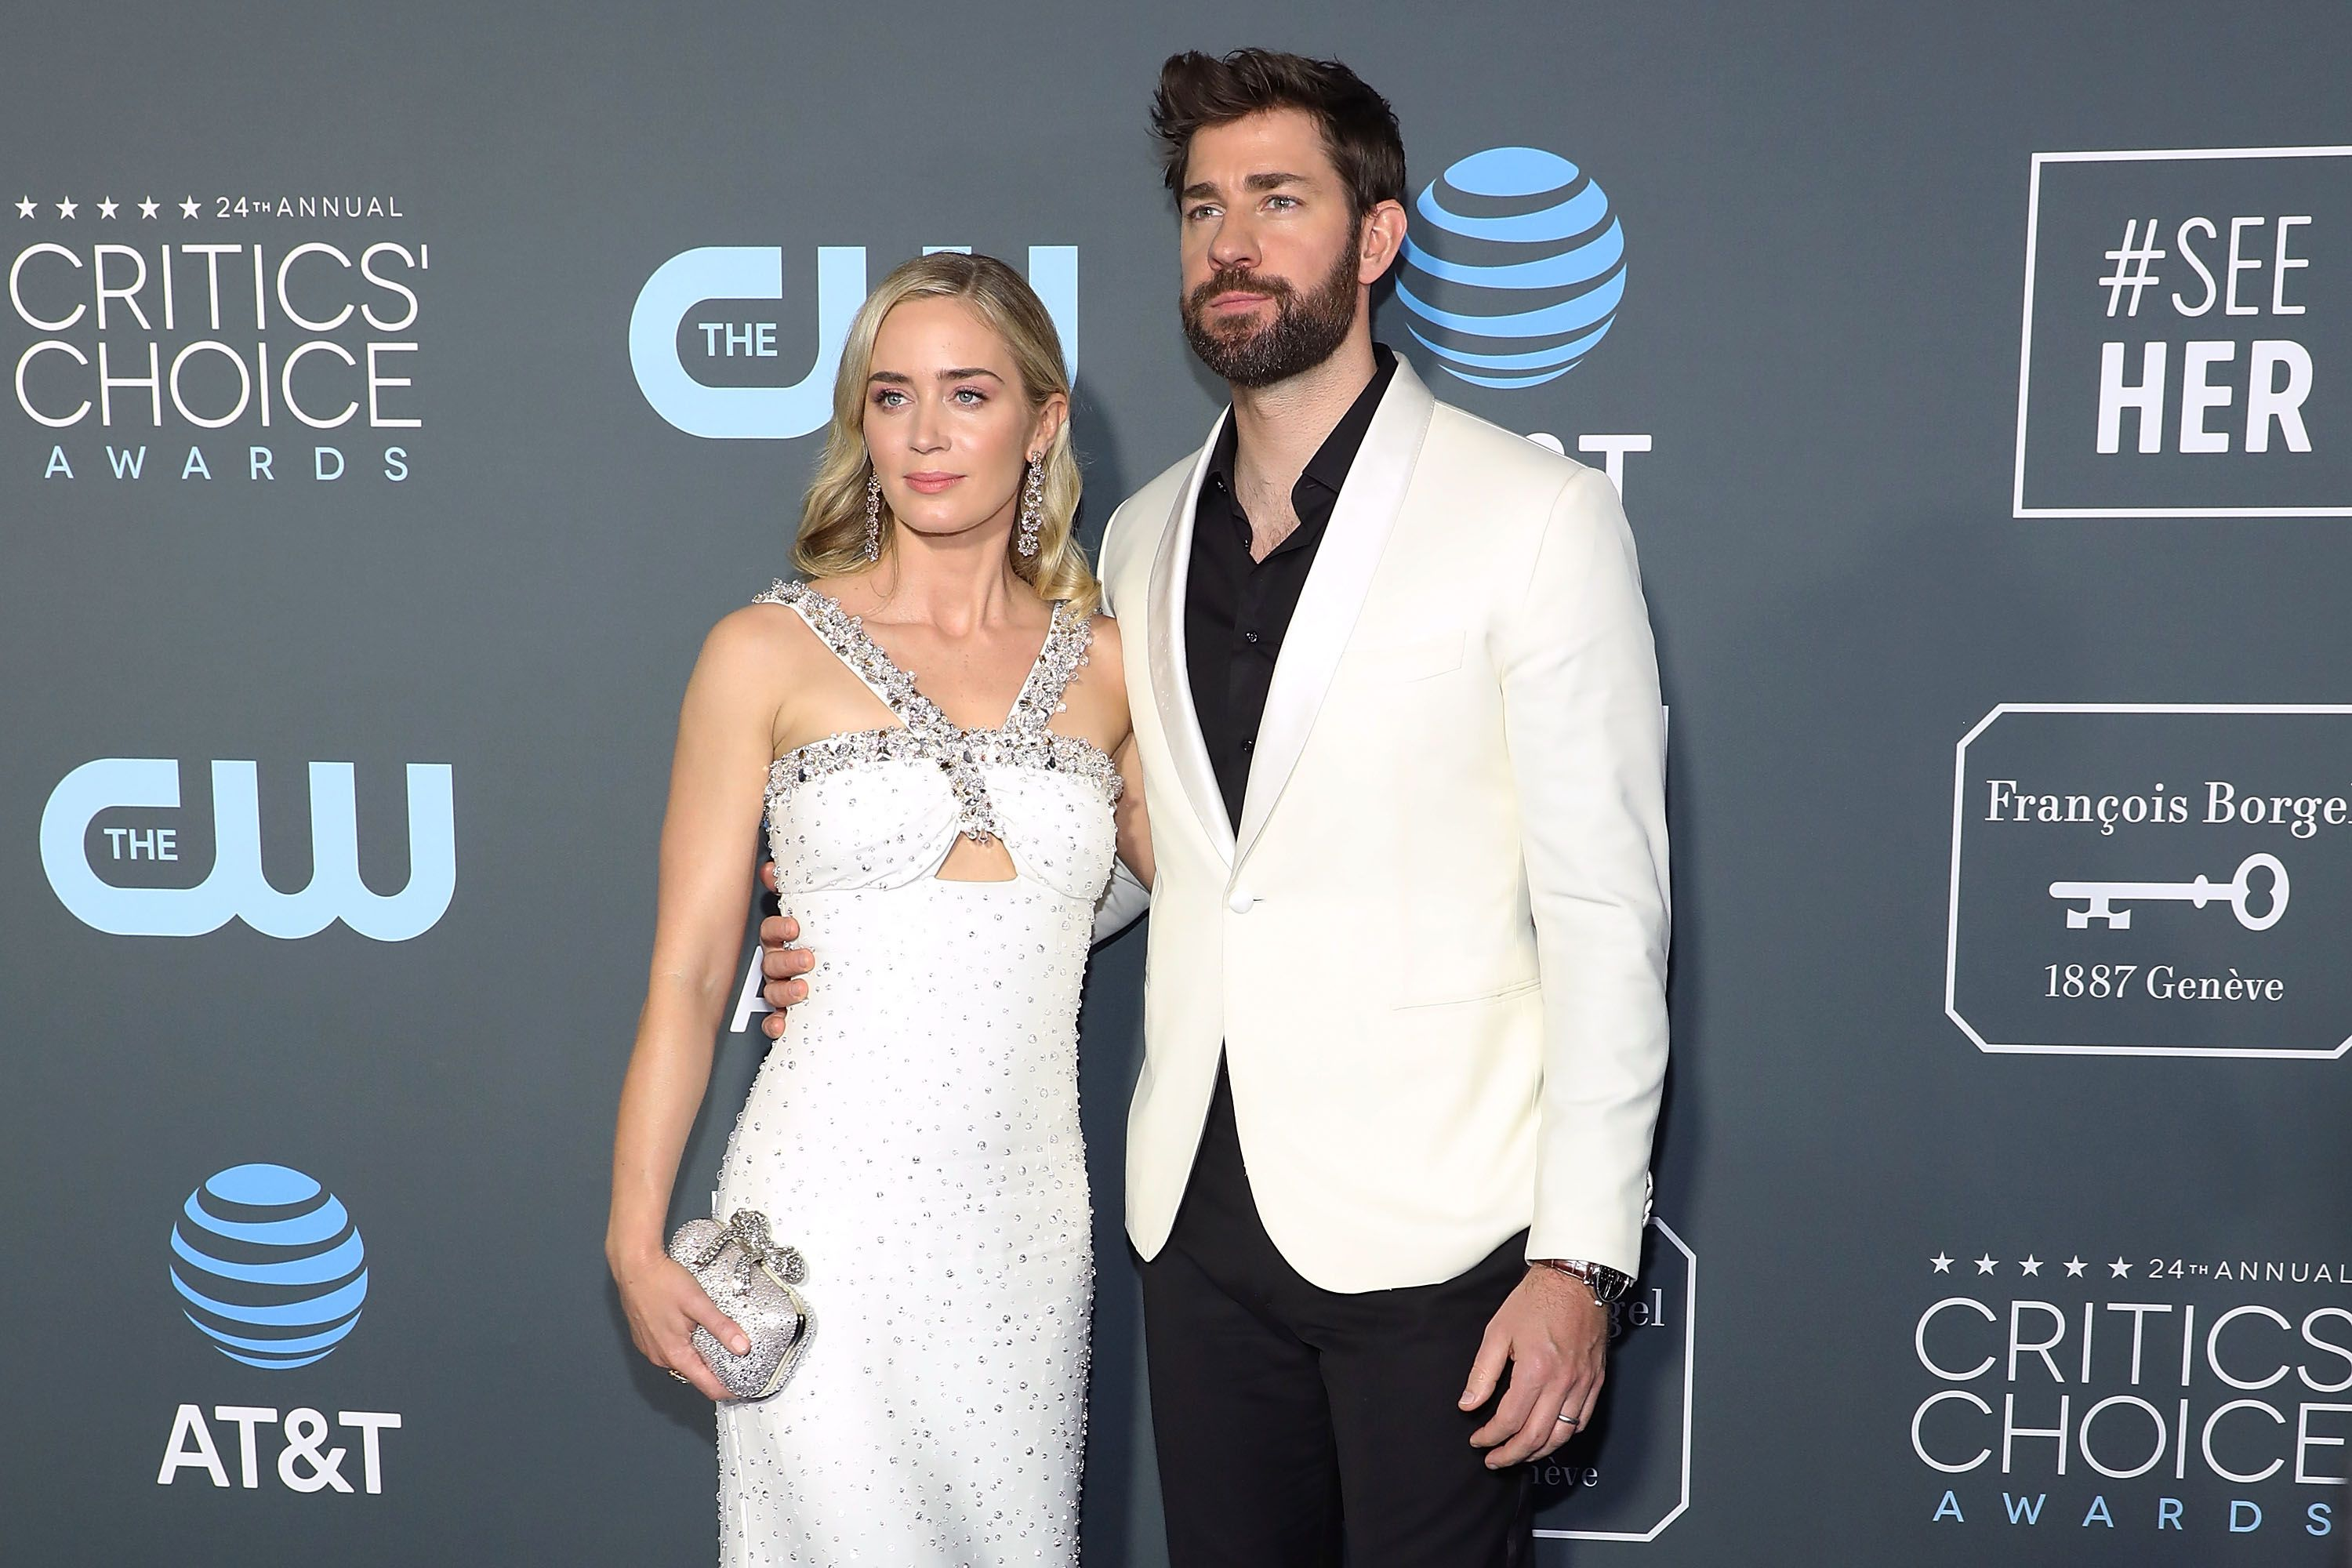 John Krasinski has been happily married to Emily Blunt / Getty Images